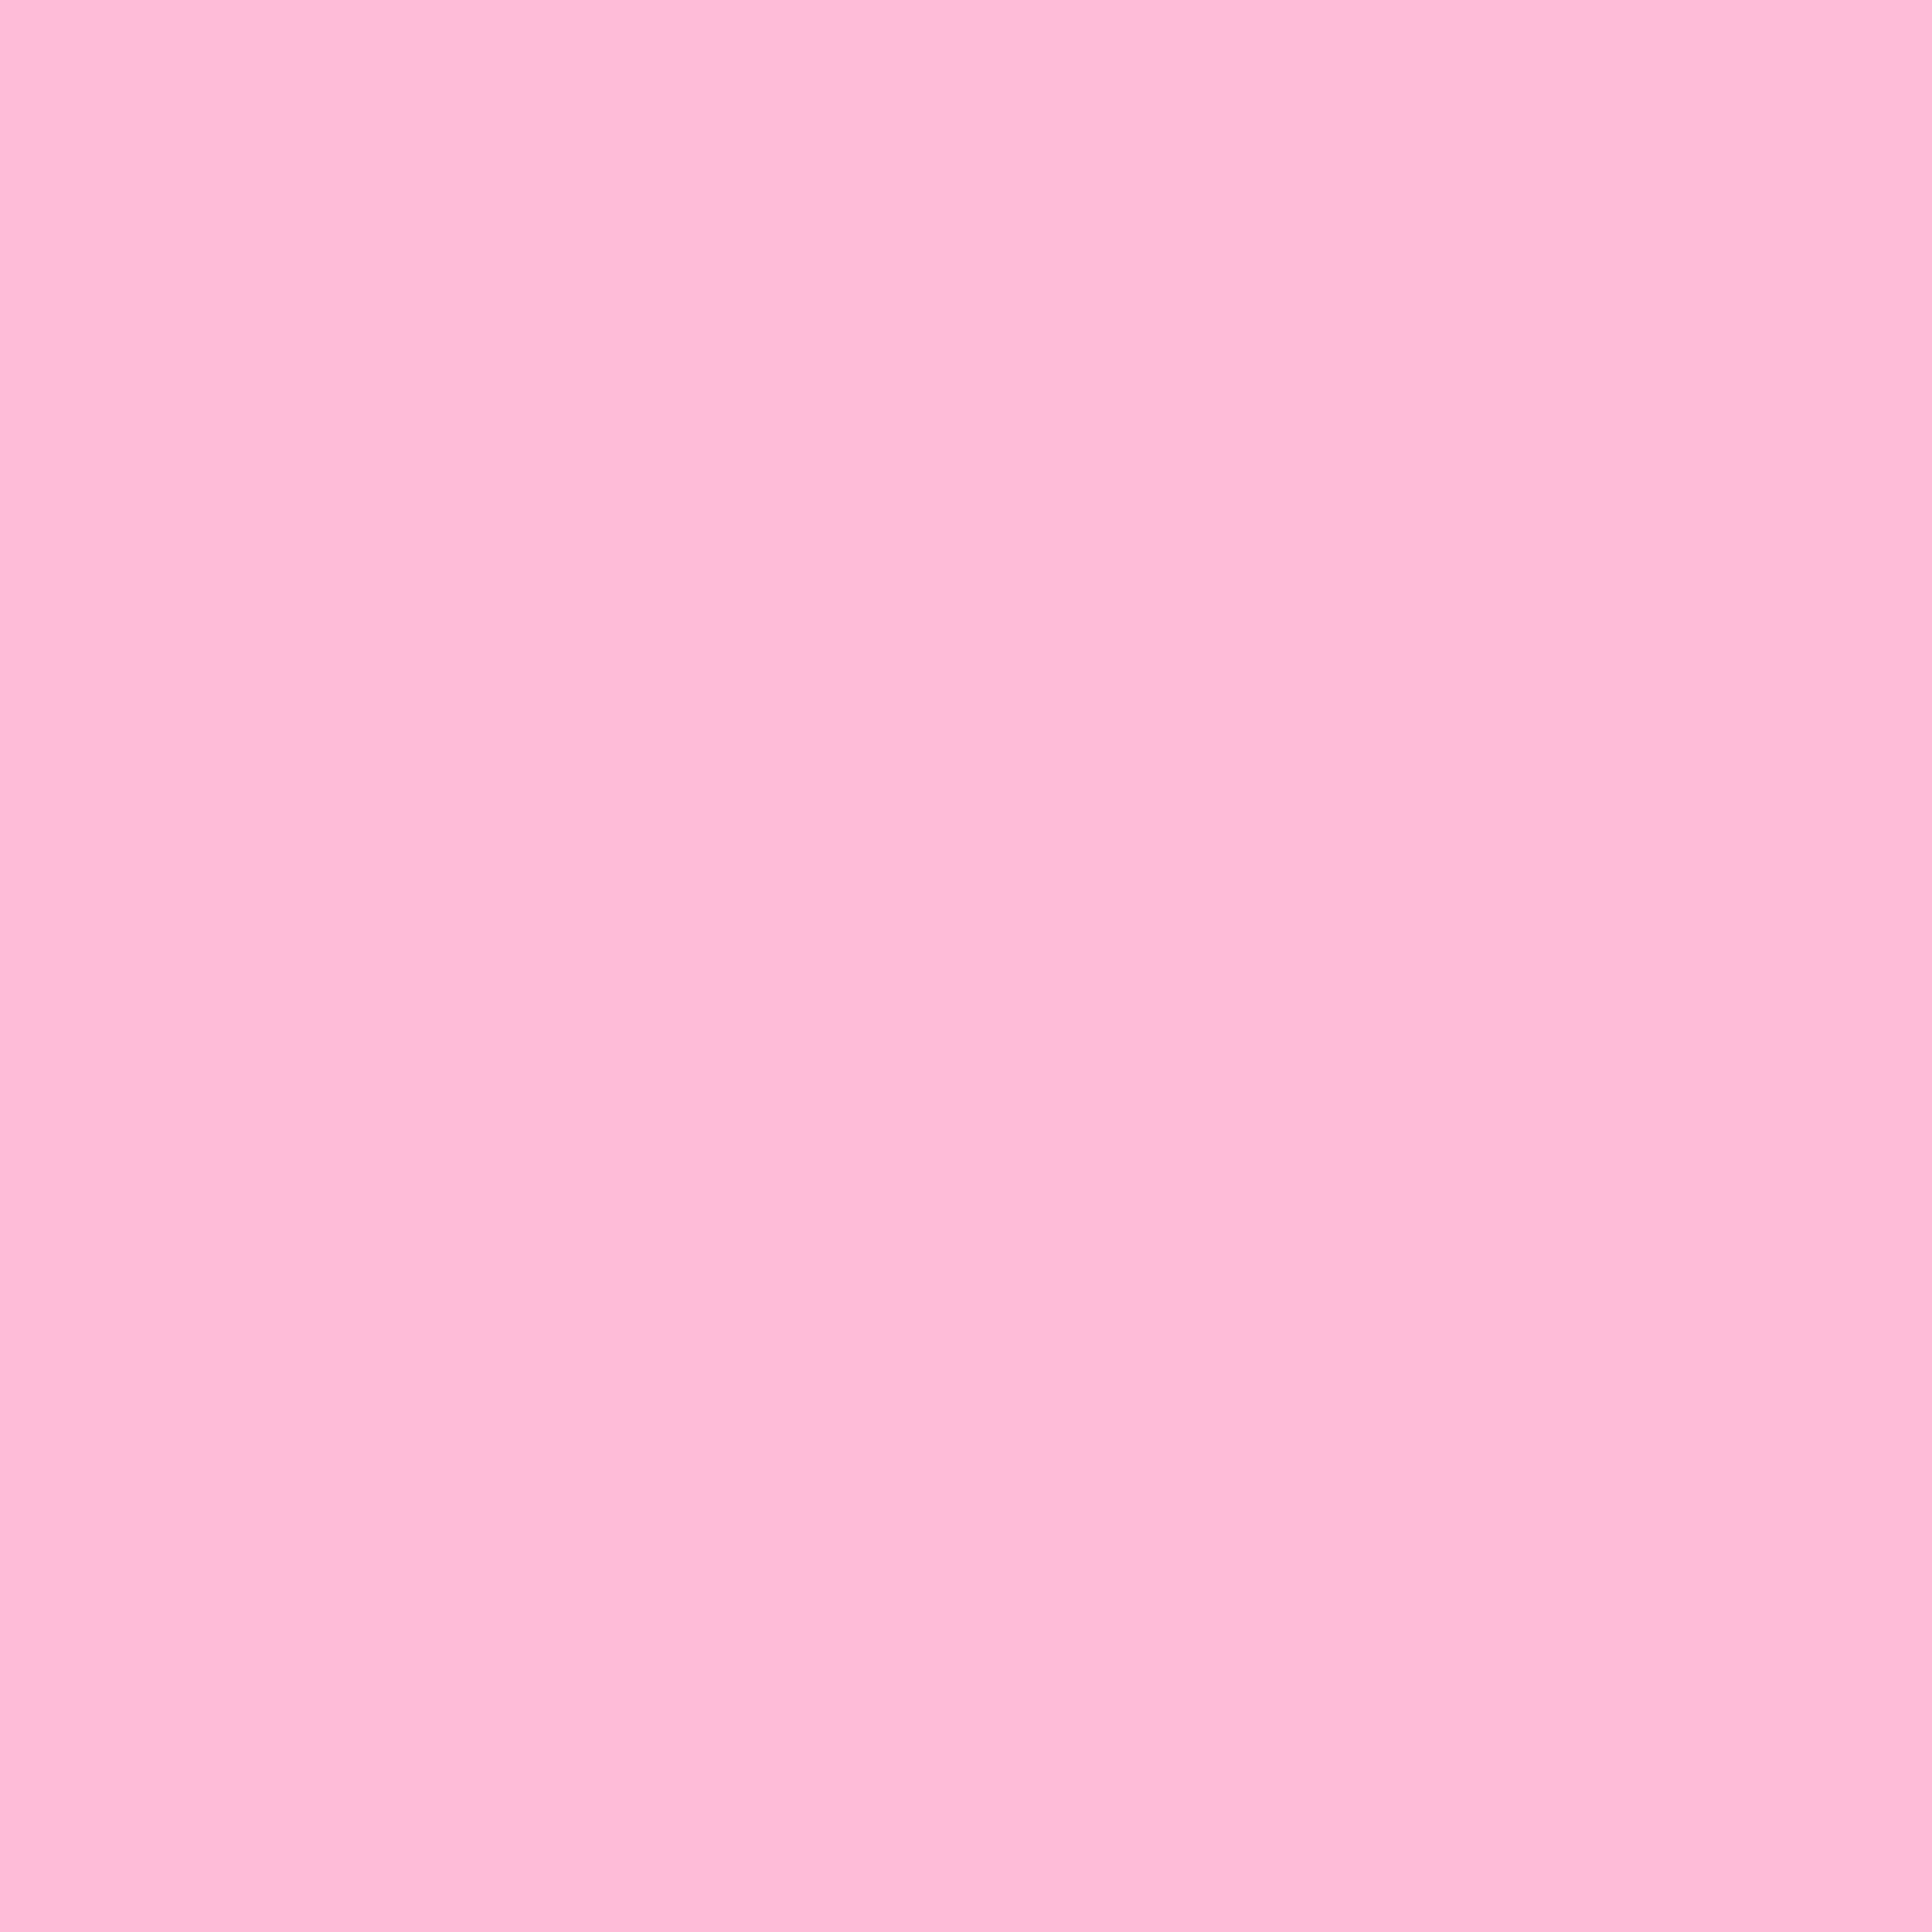 2048x2048 Cotton Candy Solid Color Background